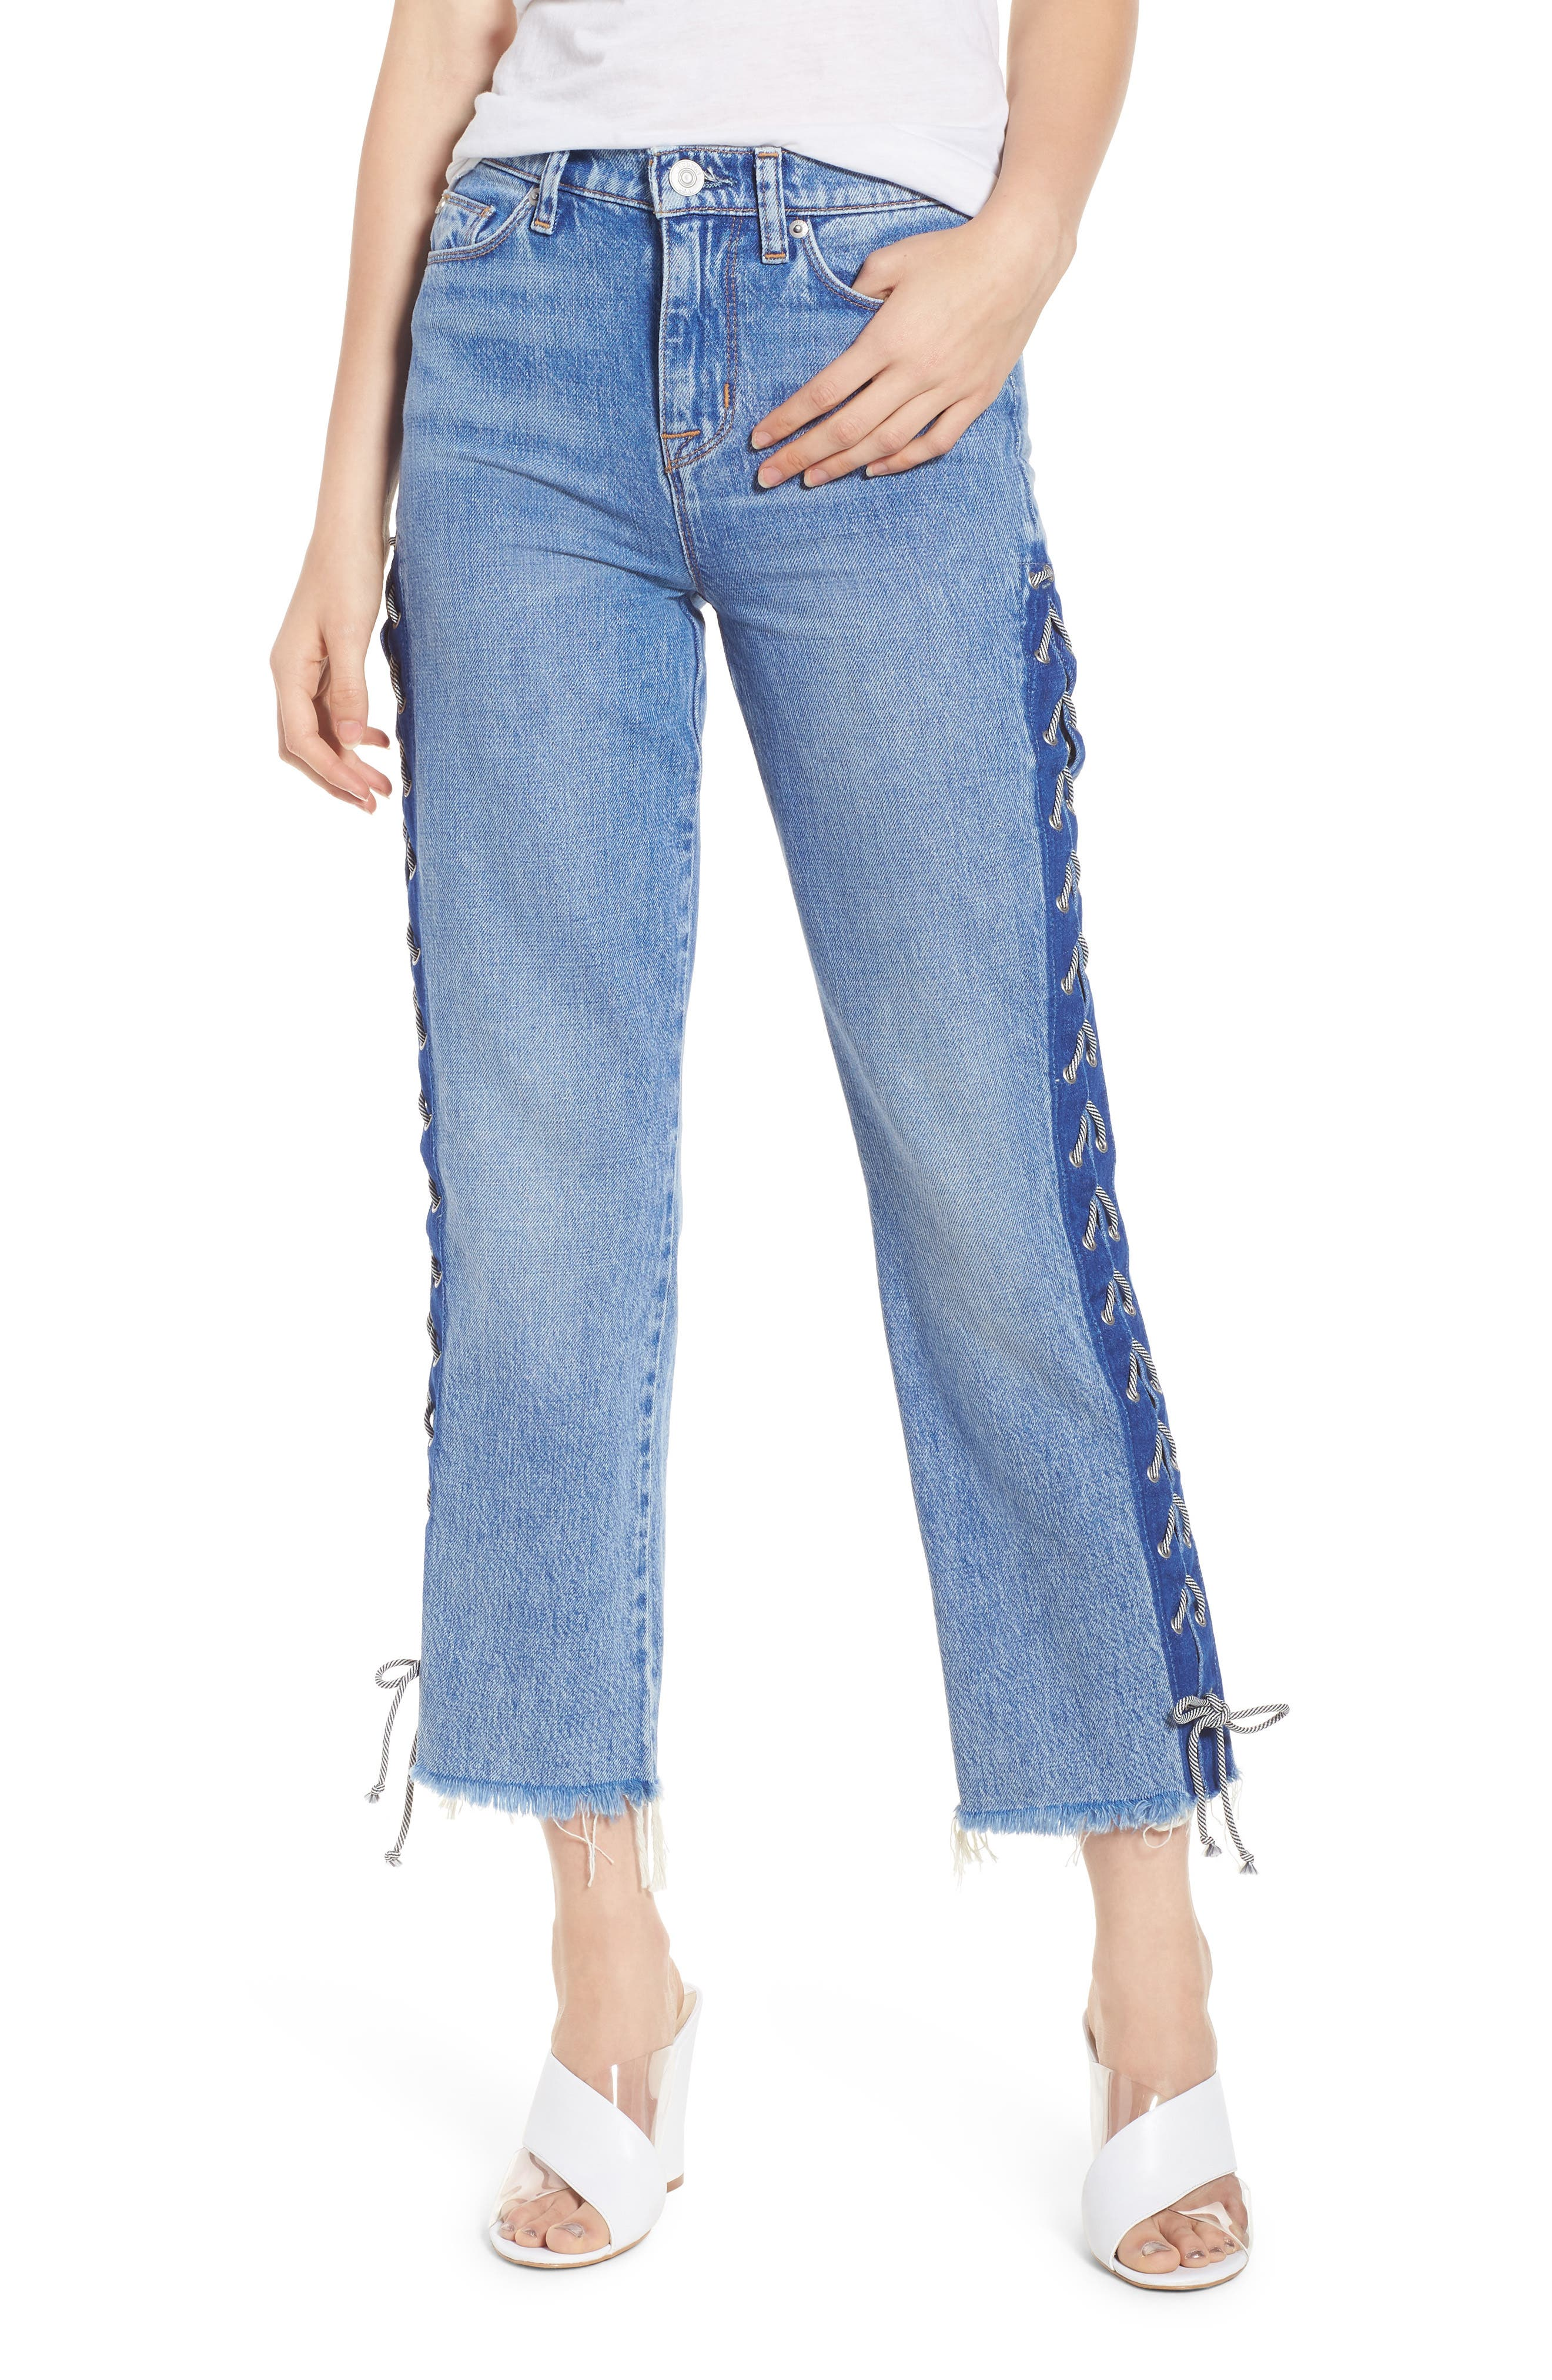 Zoeey High Waist Crop Straight Leg Jeans,                         Main,                         color, High Spirits